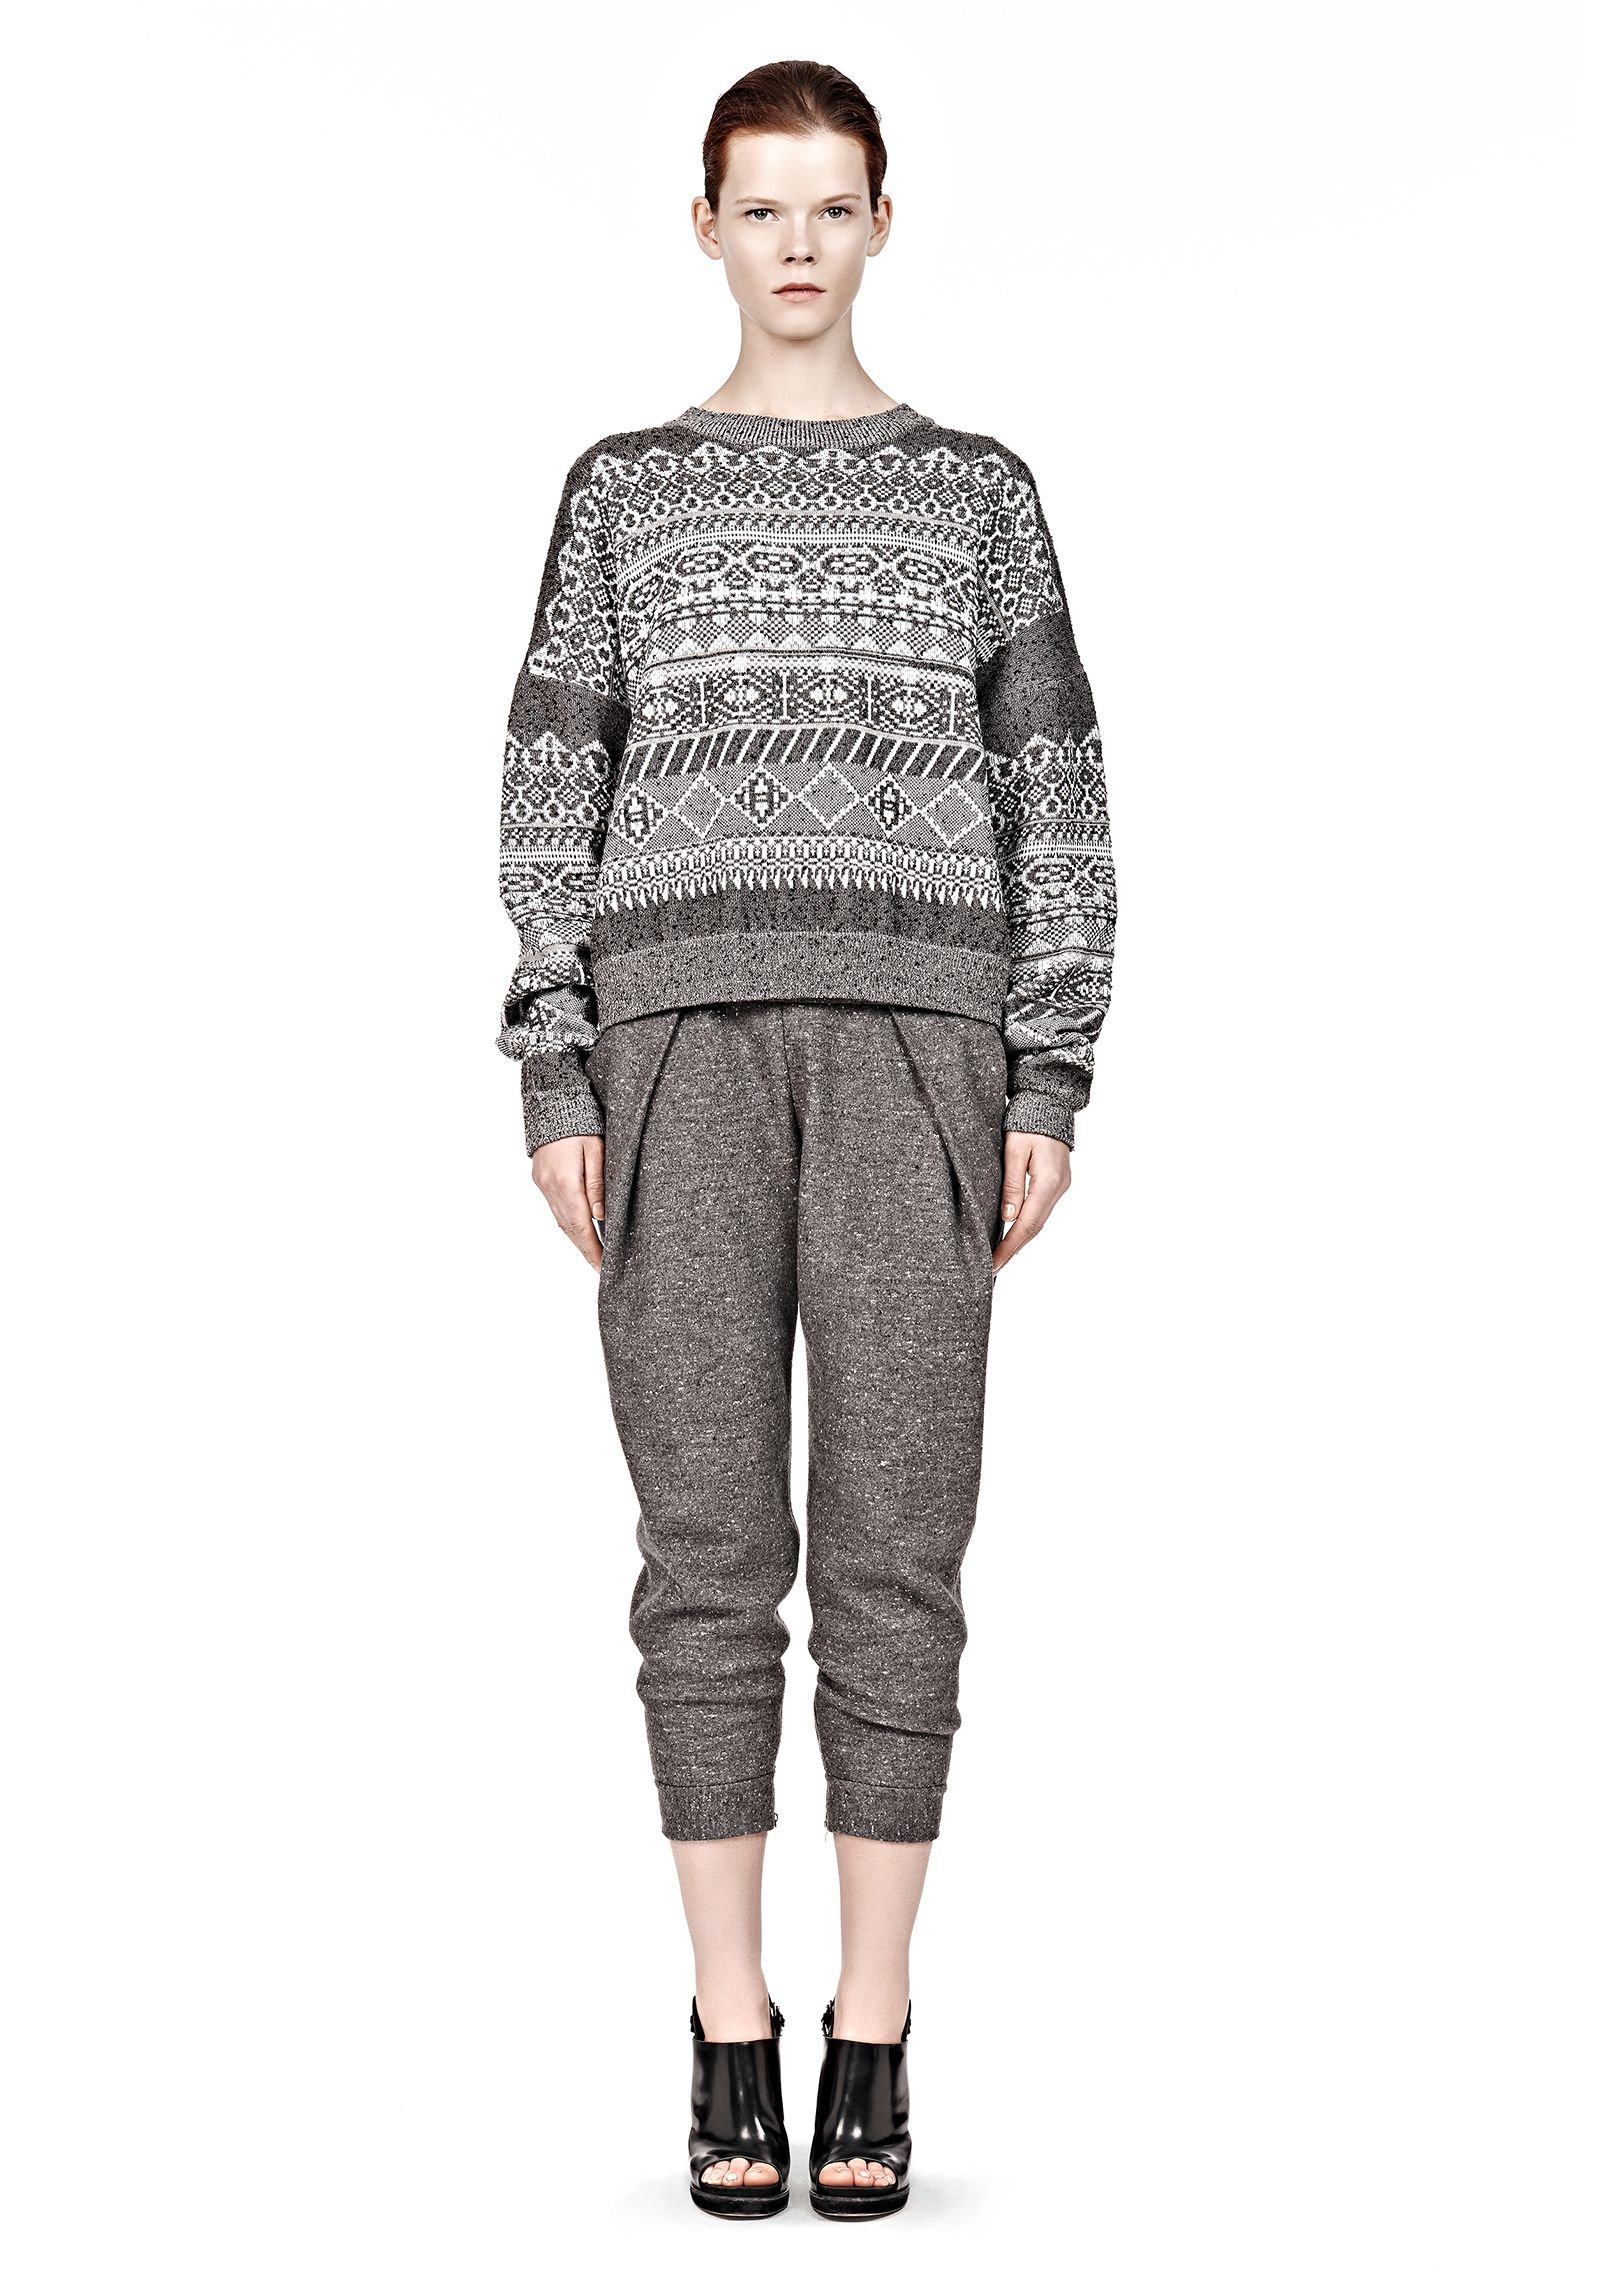 FAIR ISLE SWEATSHIRT - Tops Women - Alexander Wang Online Store